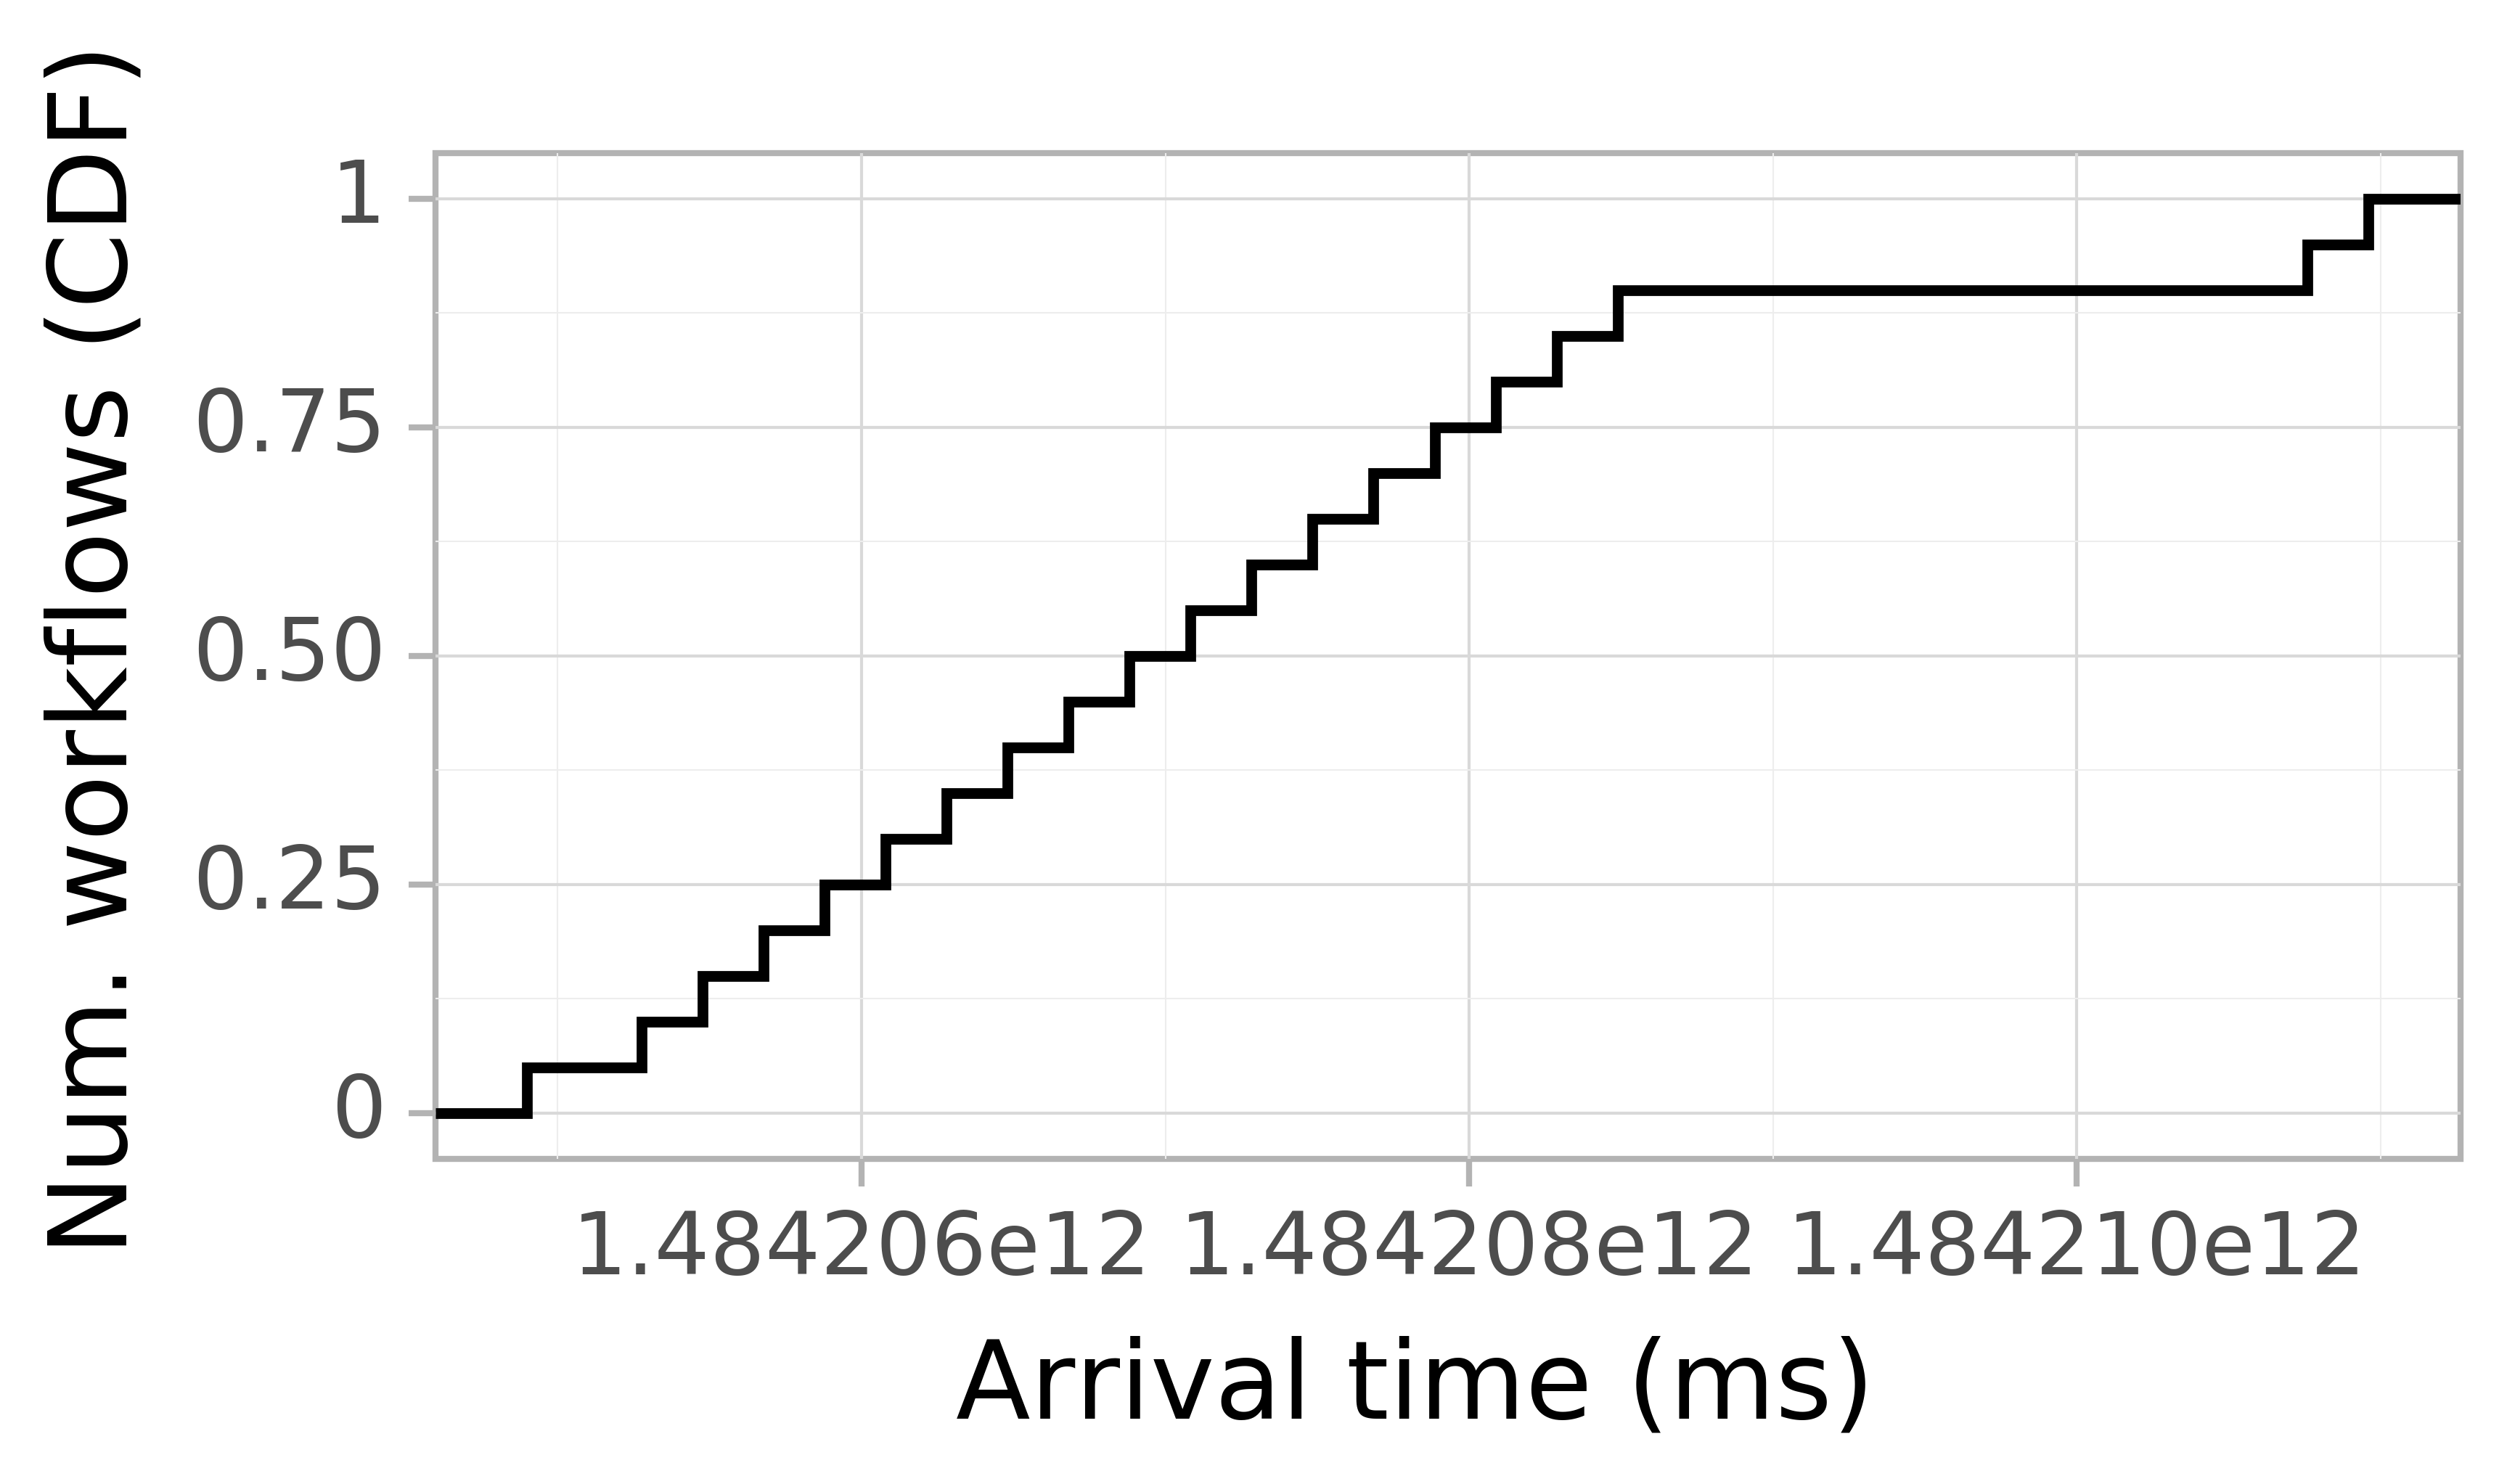 Job arrival CDF graph for the askalon-new_ee8 trace.